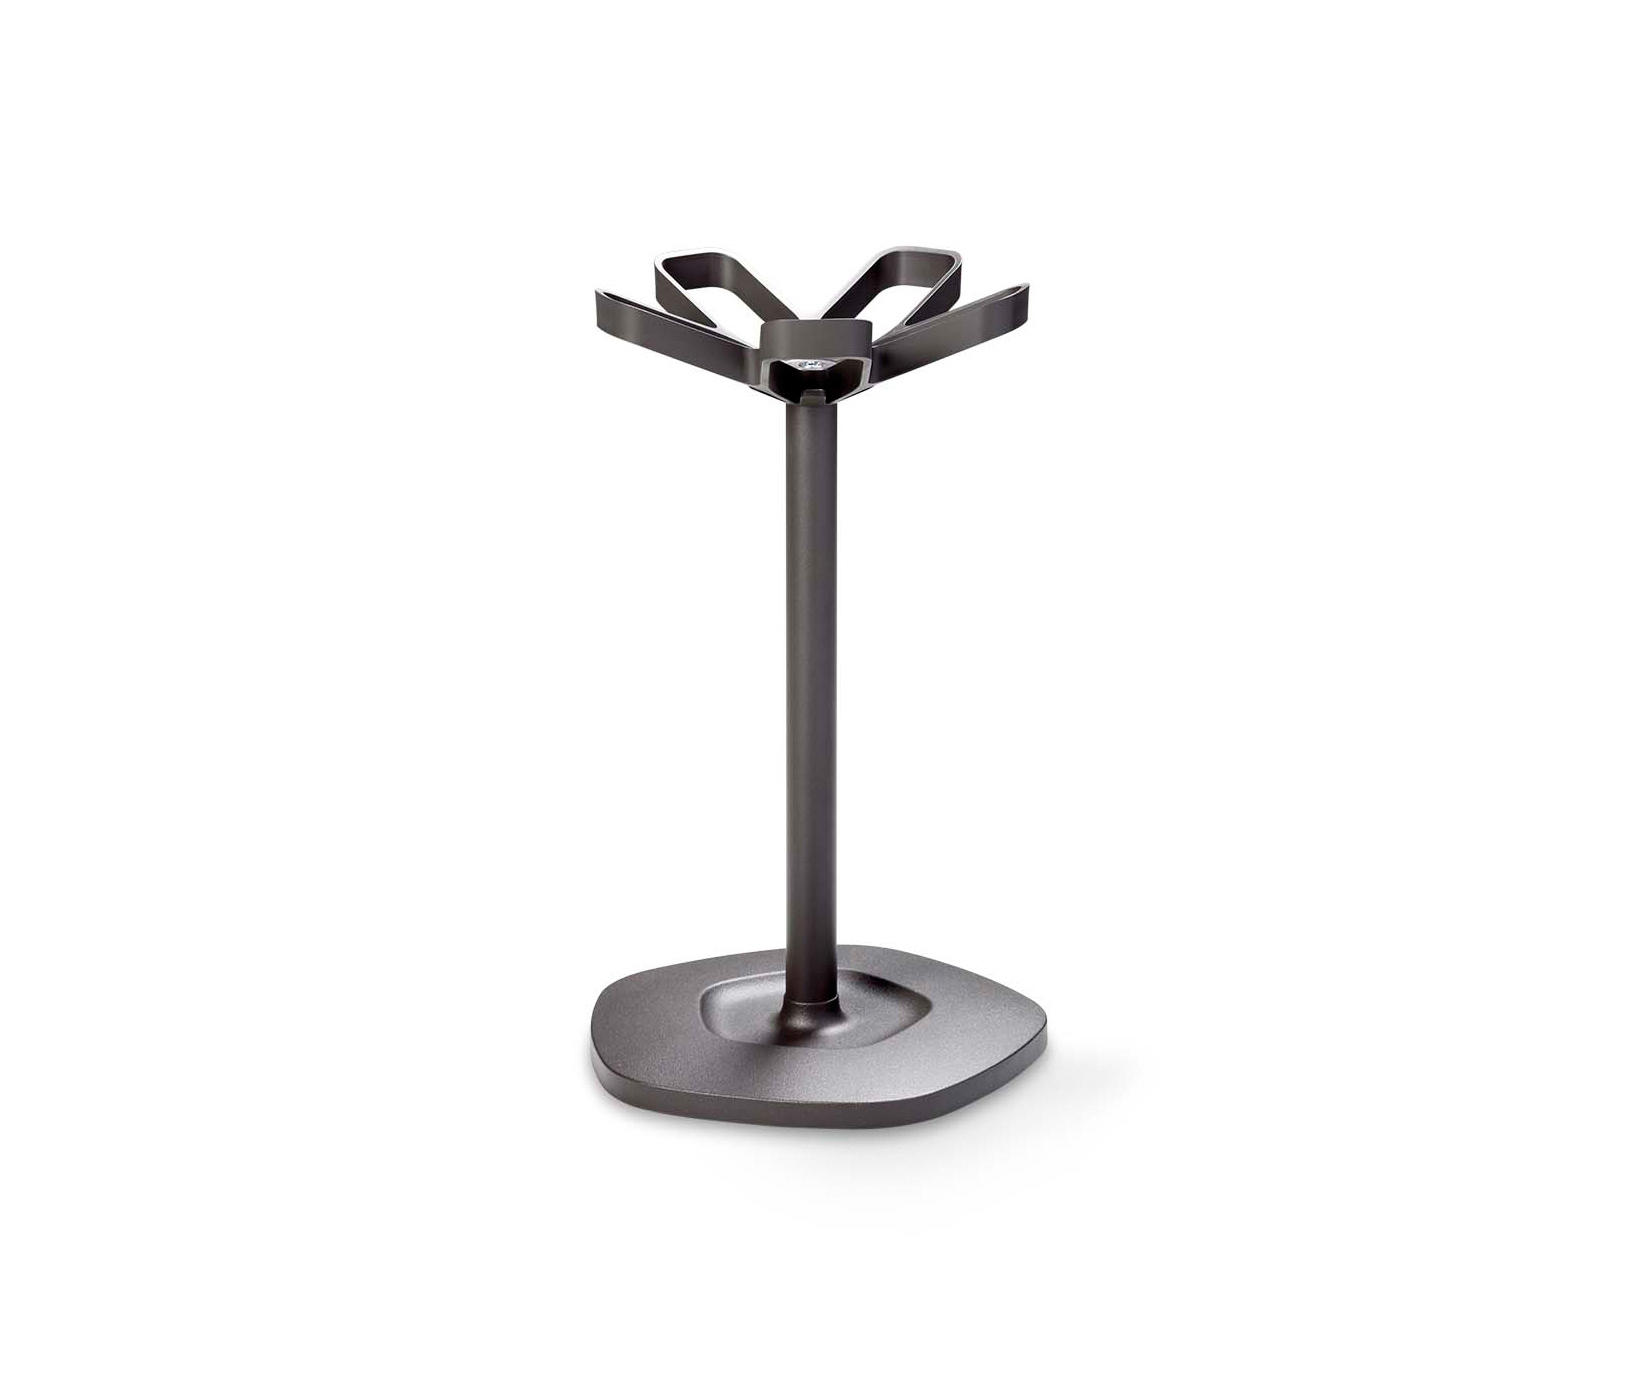 fb14d5a9c9bd FLOWER UMBRELLA STAND - Umbrella stands from Cascando | Architonic